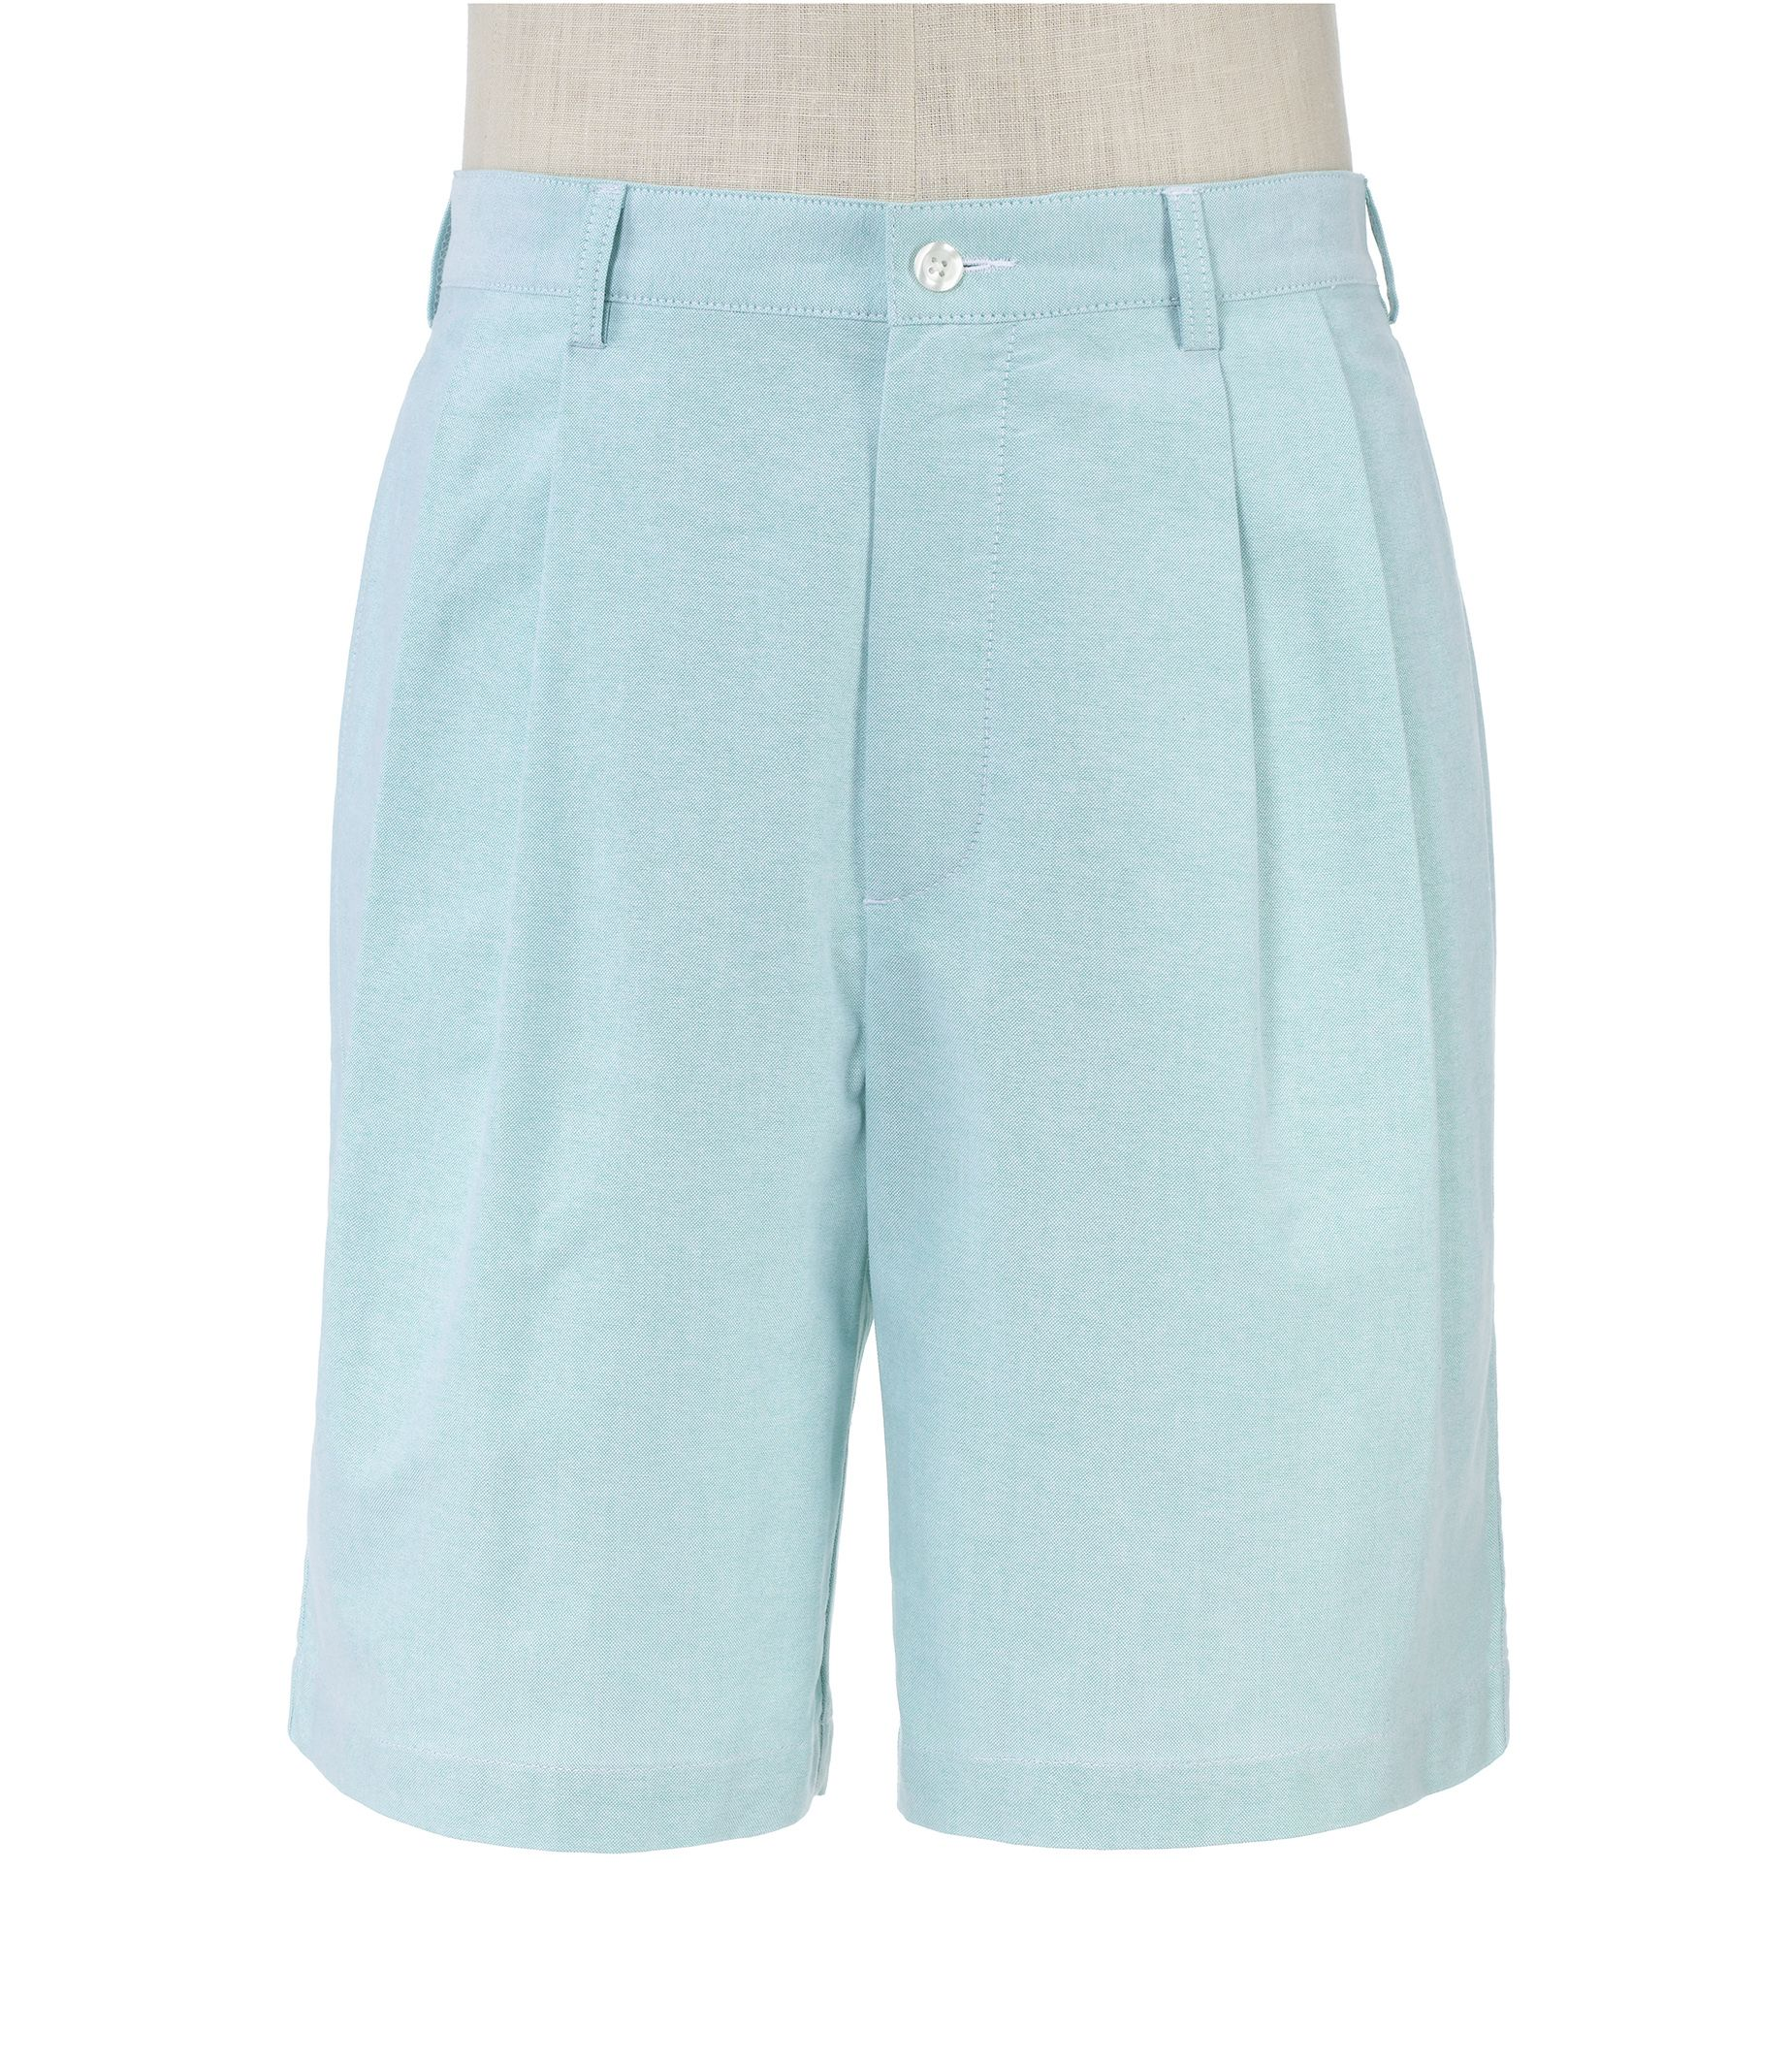 Stays Cool Cotton Pleated Oxford Shorts Extended Sizes.